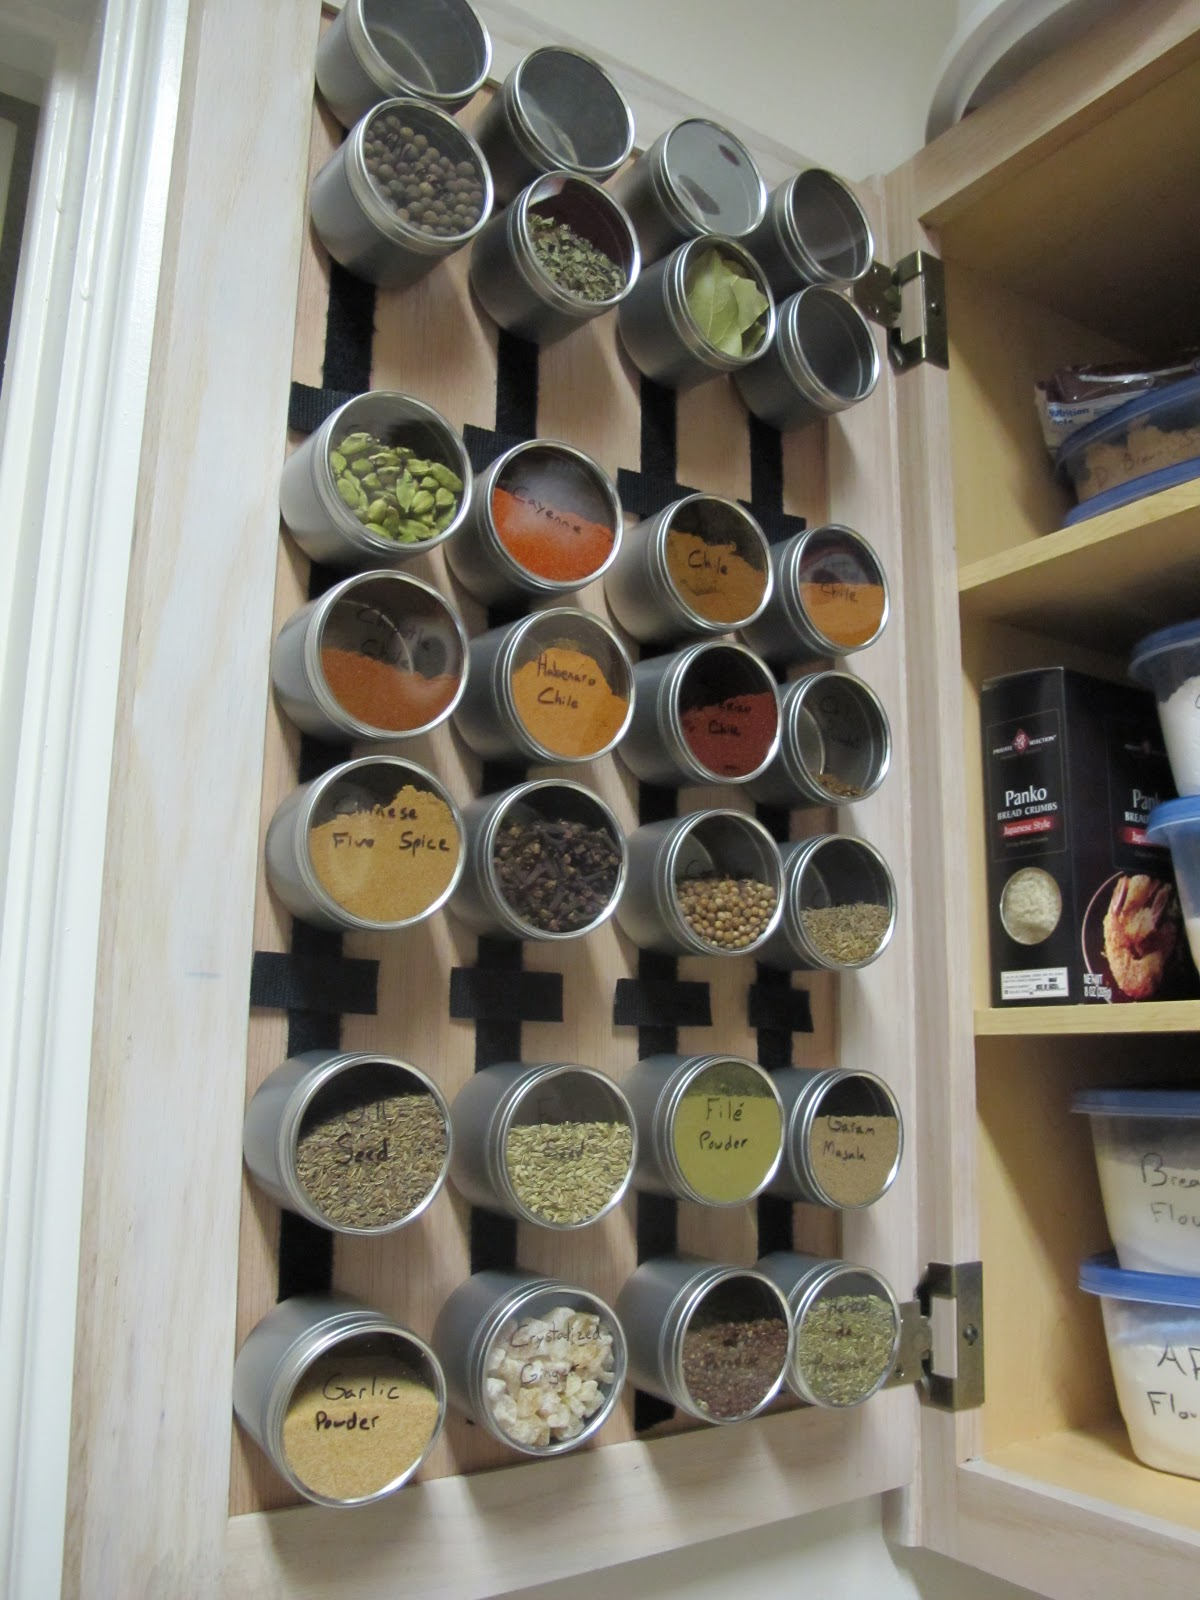 Creative Spice Storage The Ramblings Of Chuck Howard Mission Spice Rack